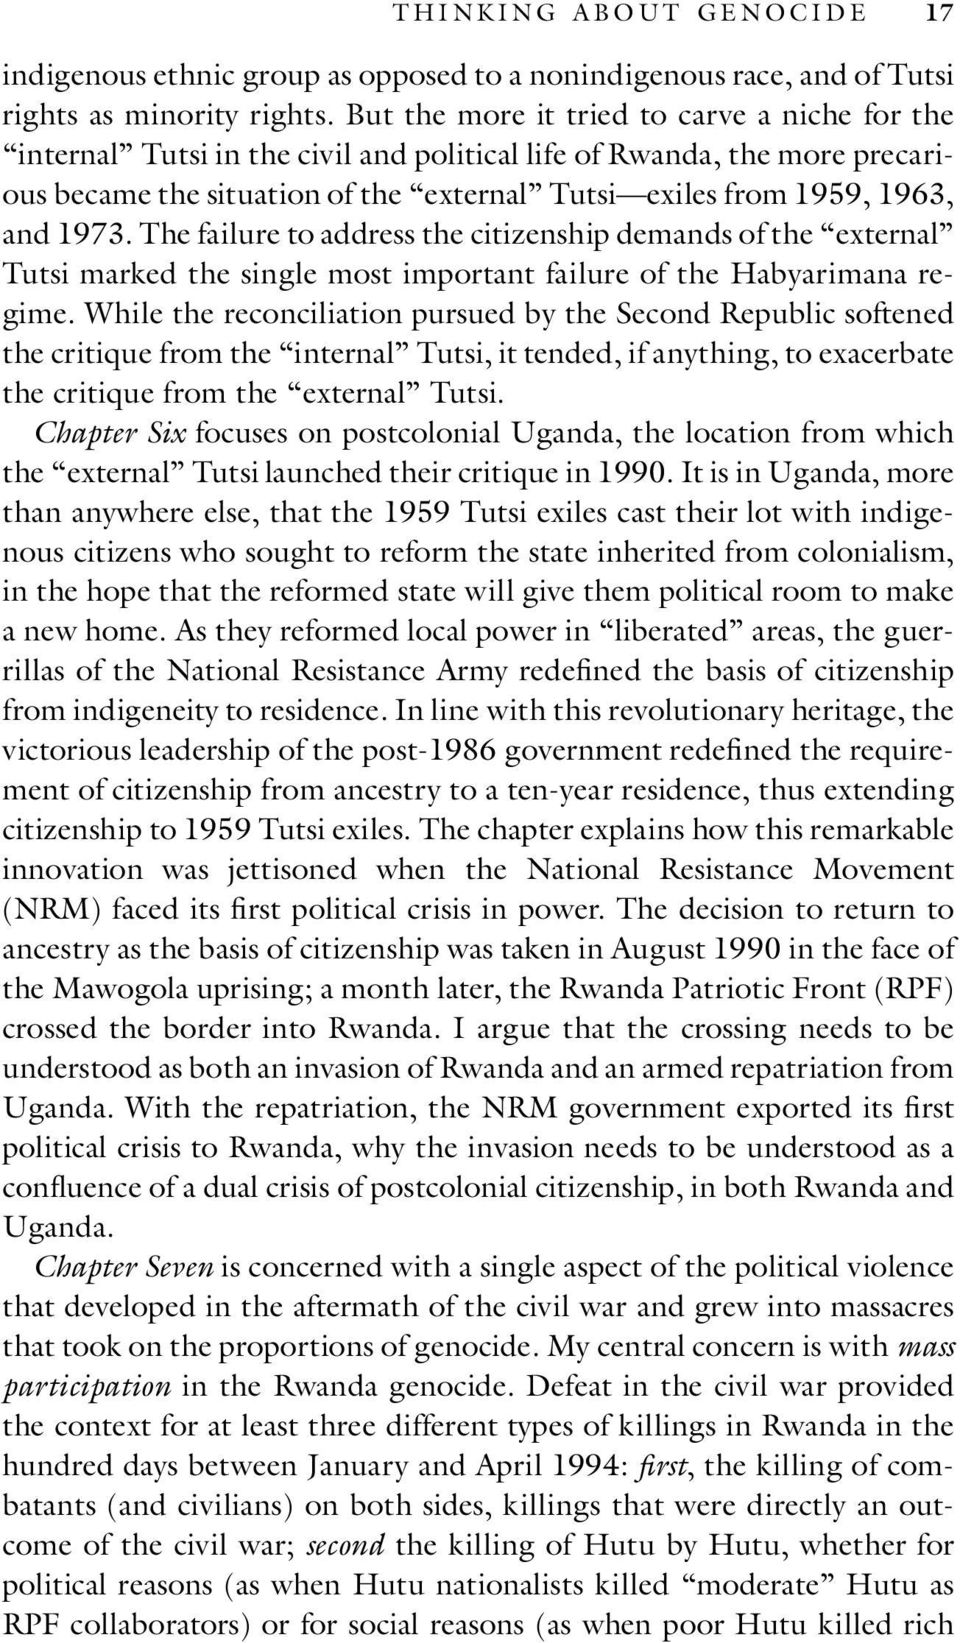 1973. The failure to address the citizenship demands of the external Tutsi marked the single most important failure of the Habyarimana regime.